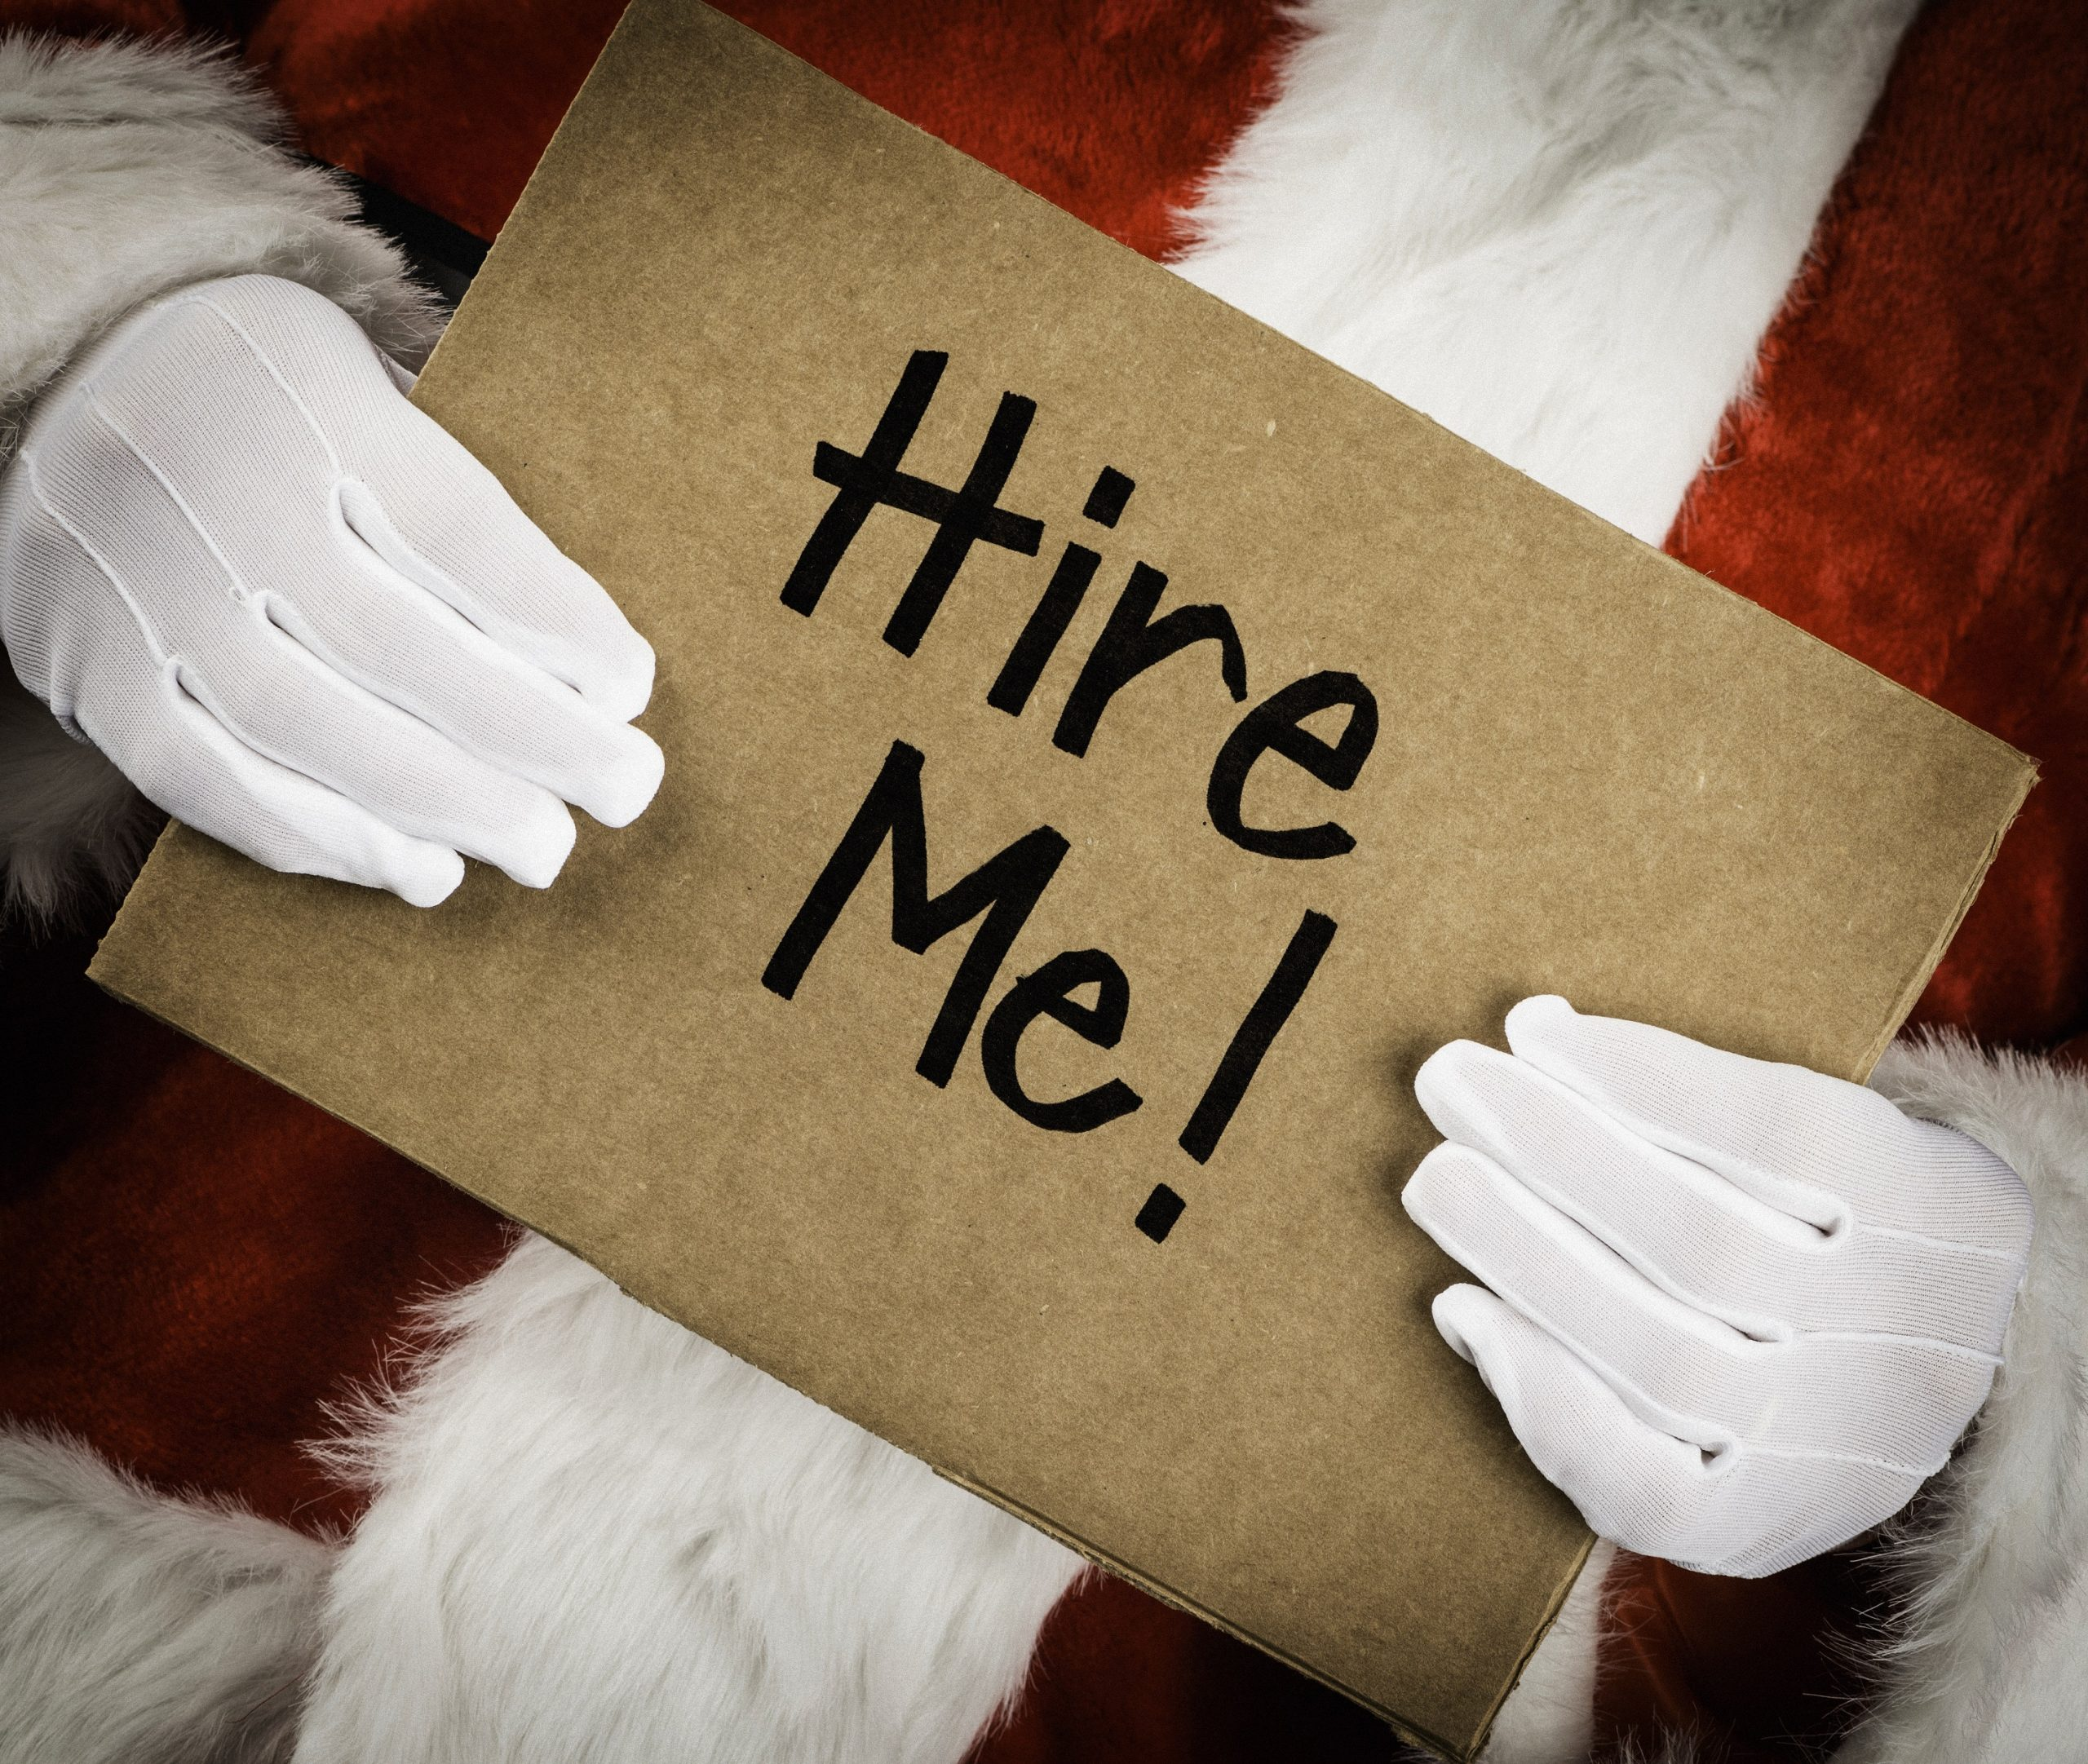 Seasonal Staffing Best Practices: How To Get Through the Peak Seasons